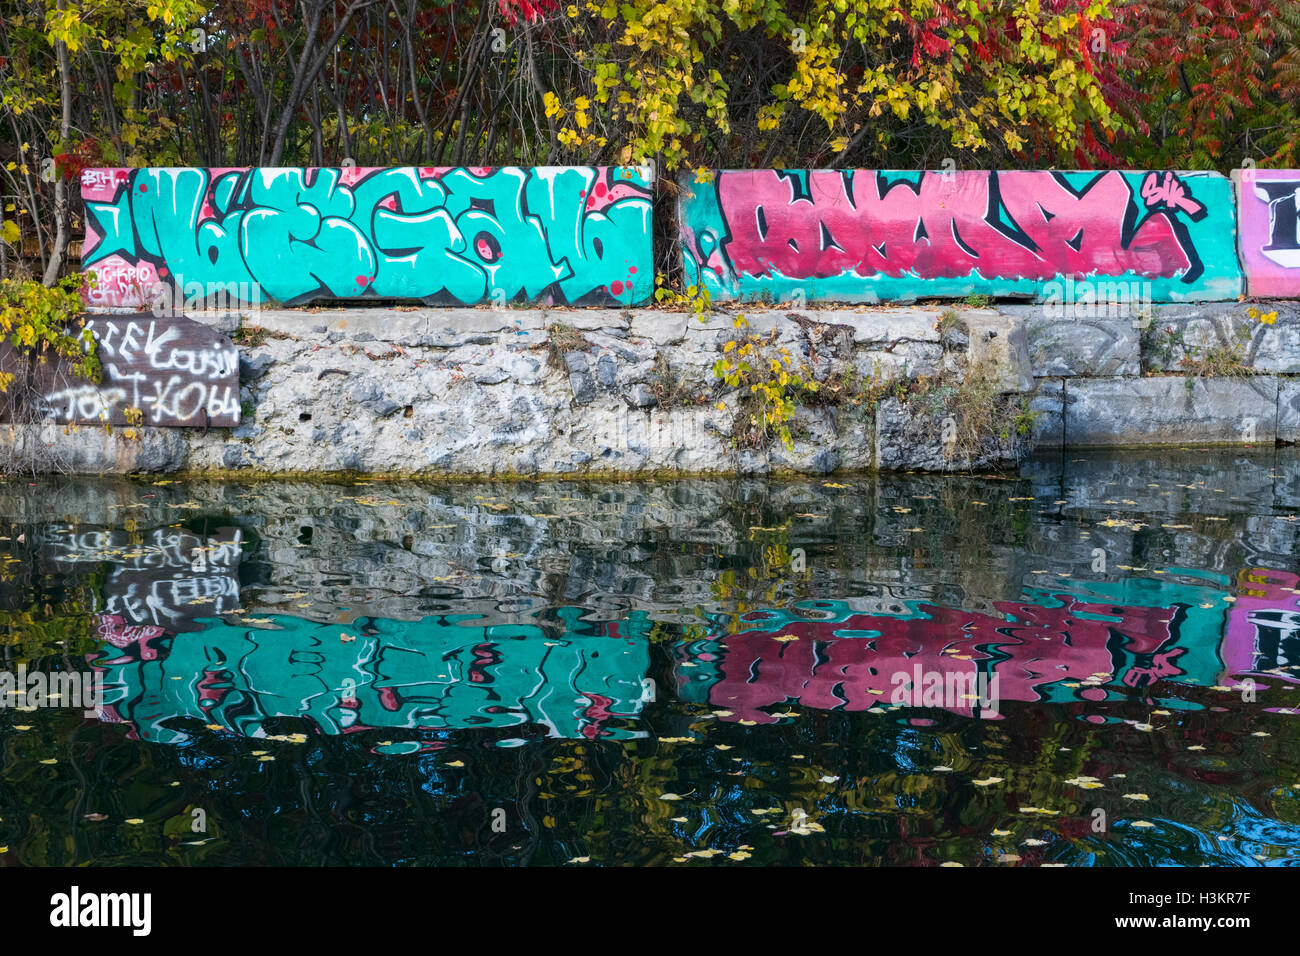 A view of graffiti in the Soulange Canal. - Stock Image